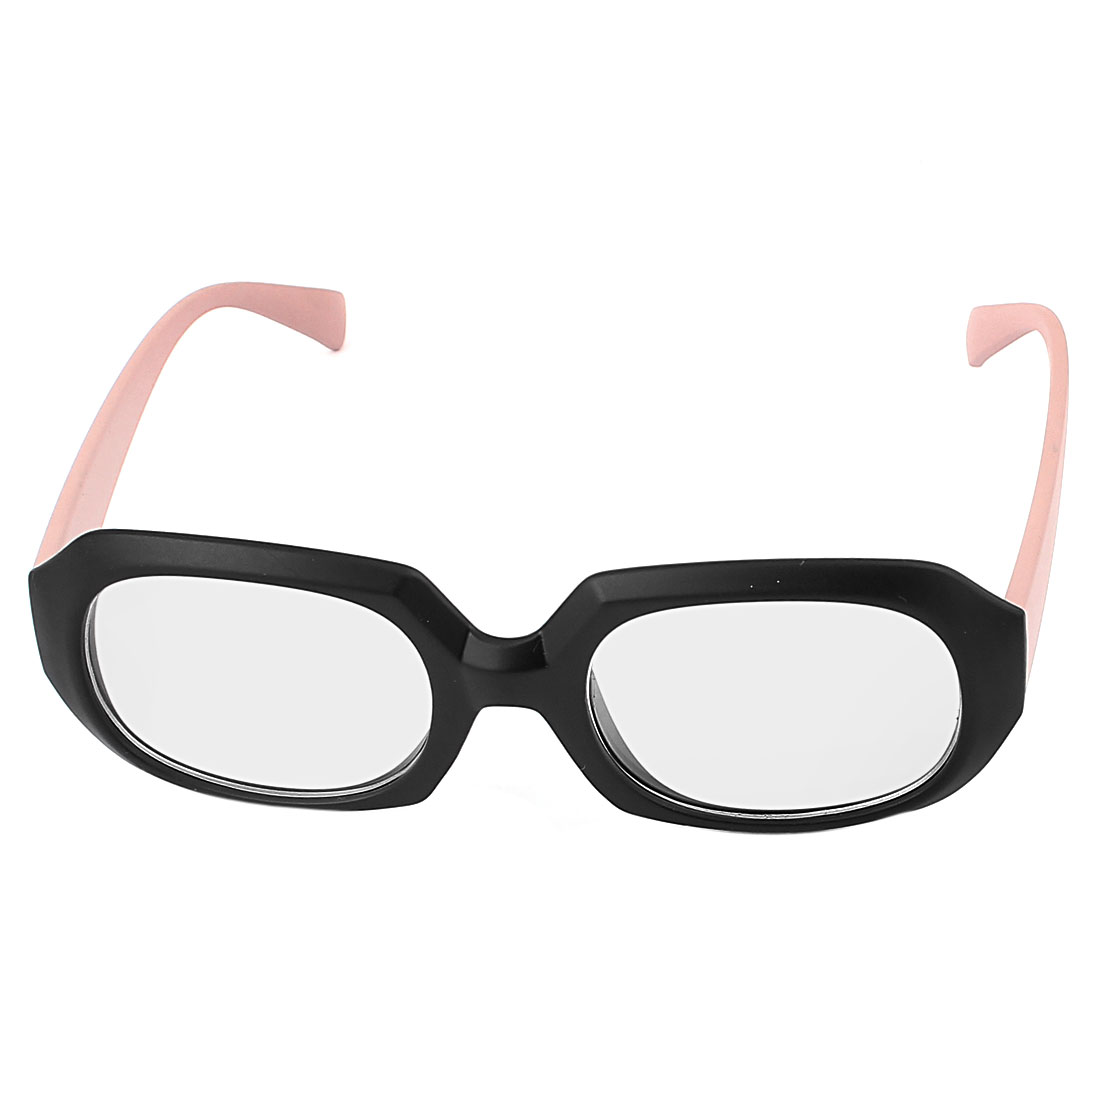 Lady Full Rim Single Bridge Pink Lens Eyeglasses Sunglasses